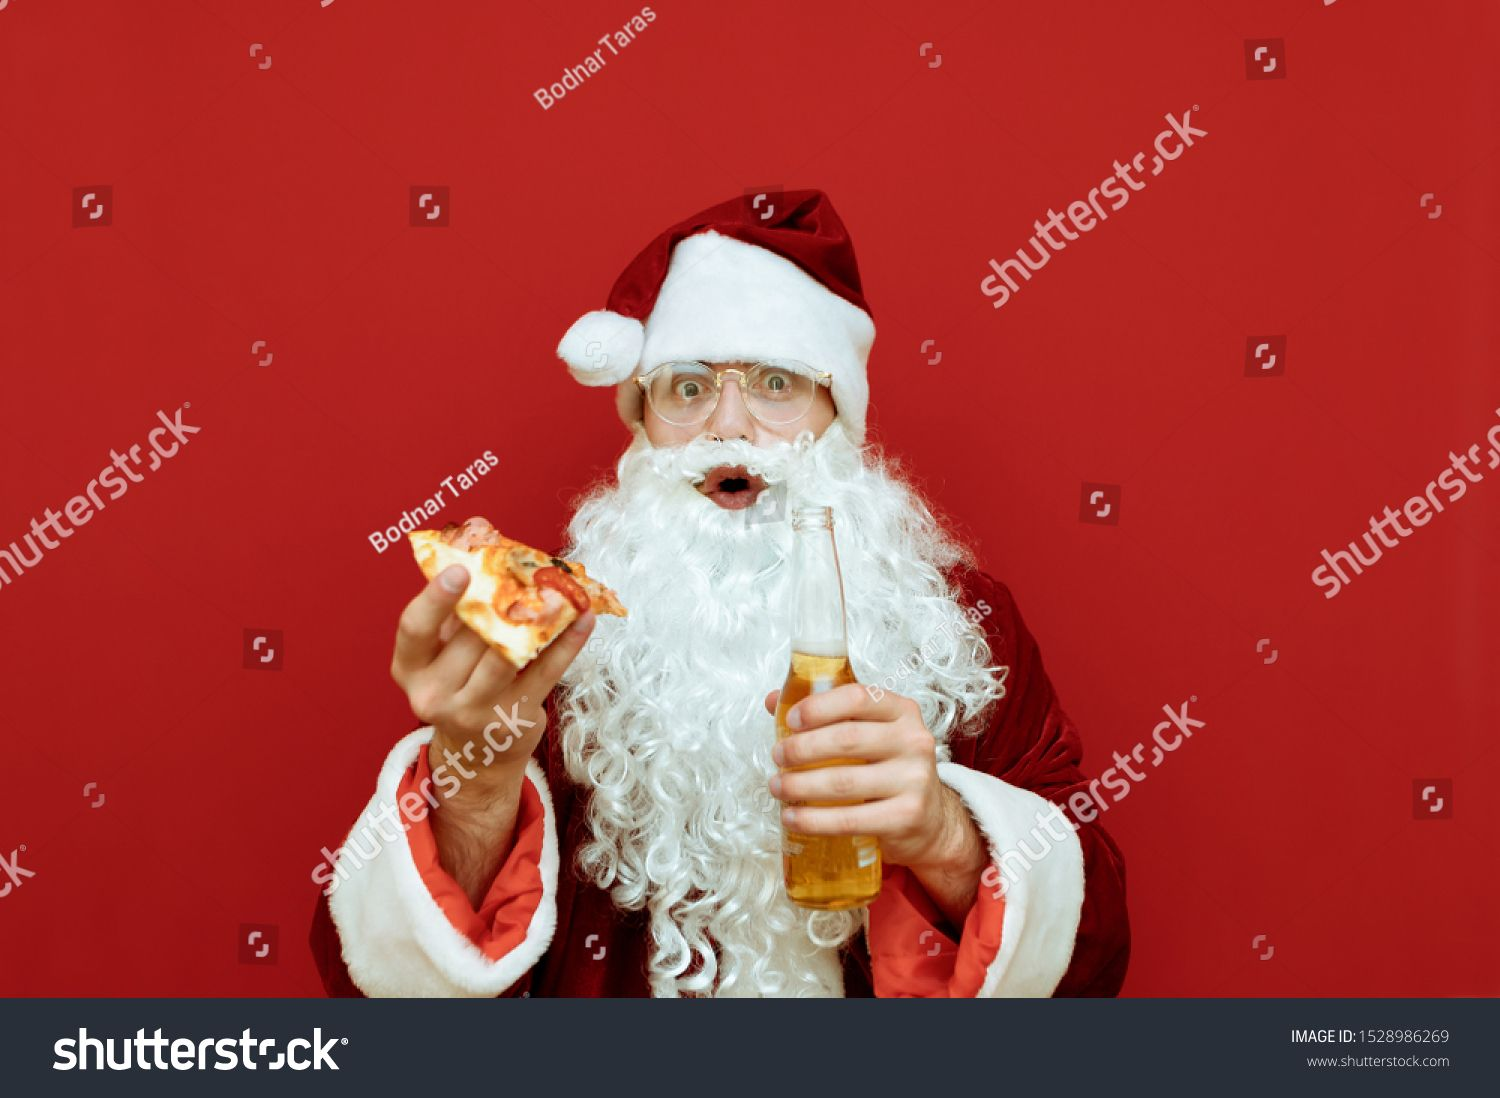 Surprised Santa Claus With Piece Of Pizza And Bottle Of Beer In Hand Stands On Red Background Looks Into Camera With Sh In 2020 Santa Funny Santa Claus Piece Of Pizza